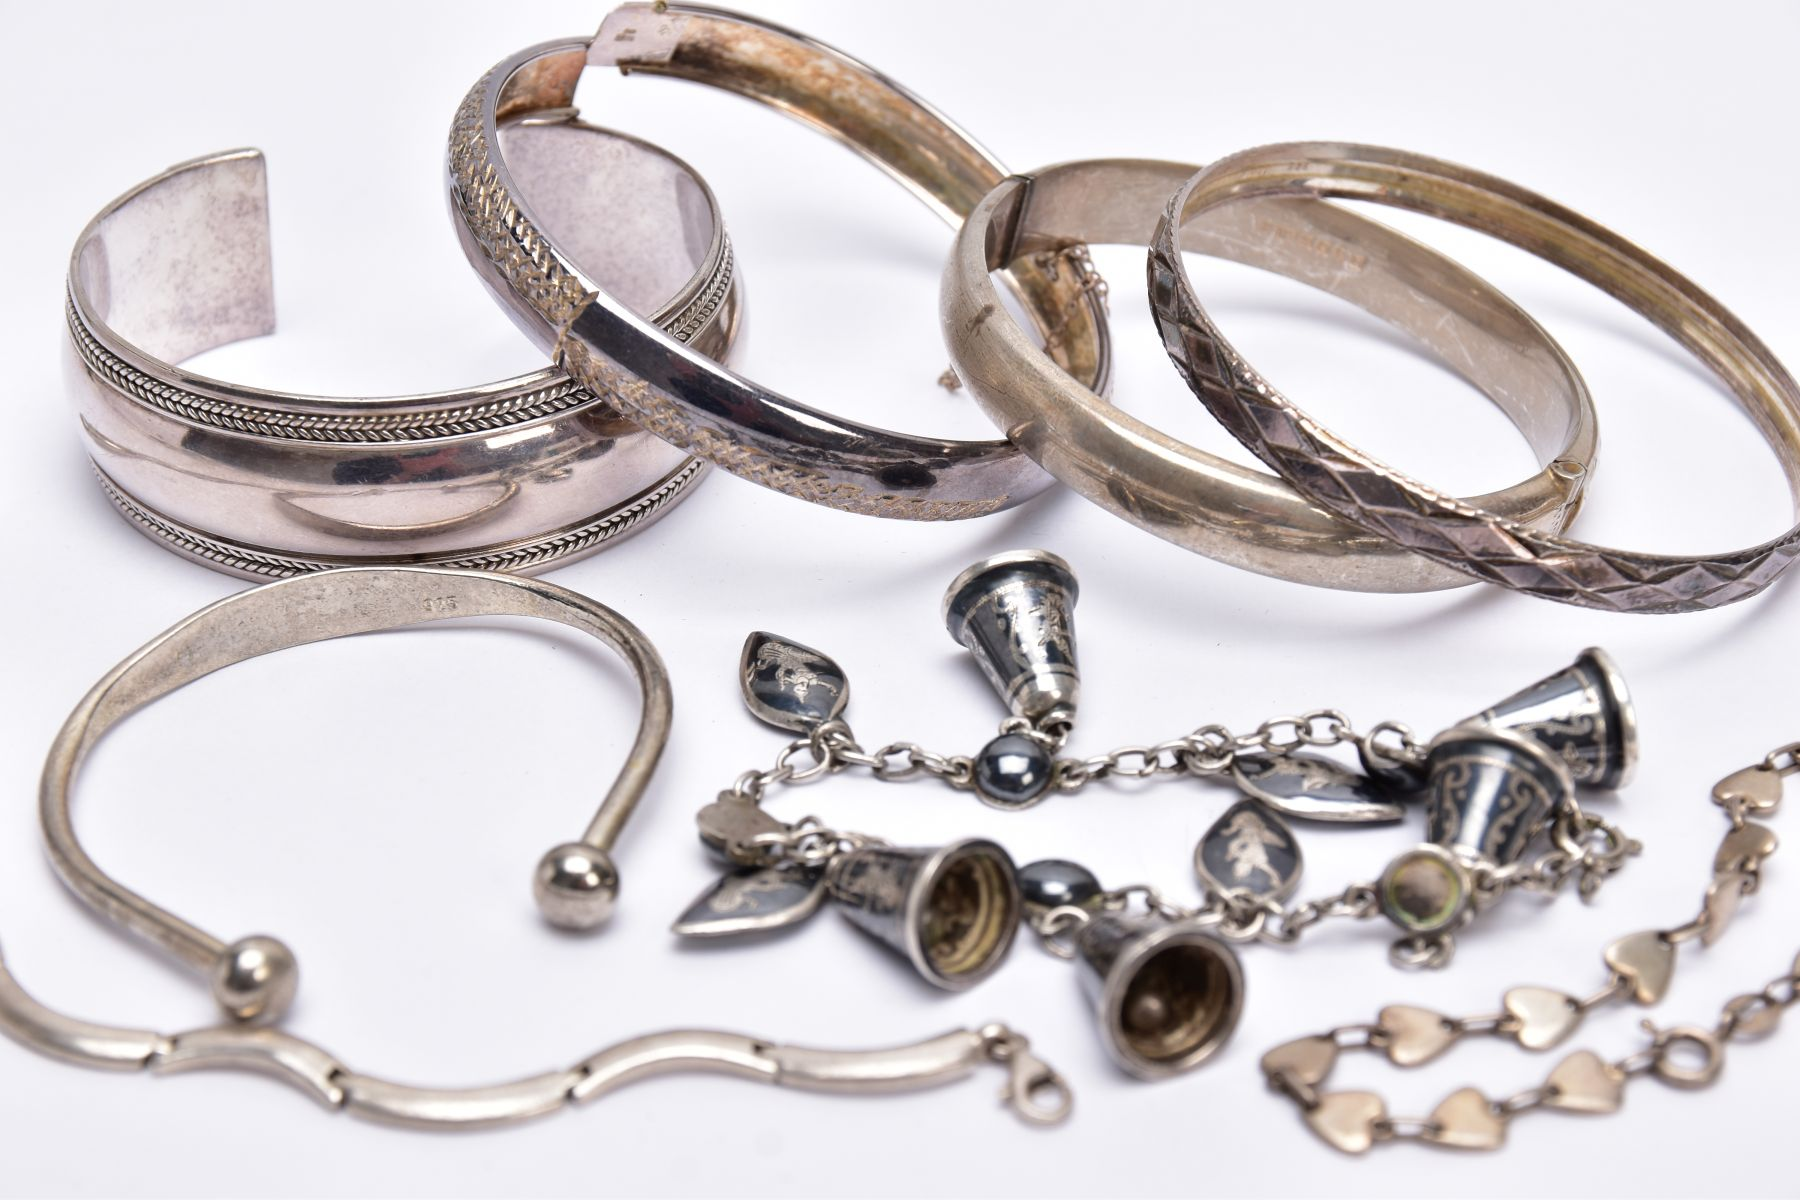 A BAG OF ASSORTED SILVER AND WHITE METAL BRACELETS, to include a silver hinged bangle with a - Image 3 of 3